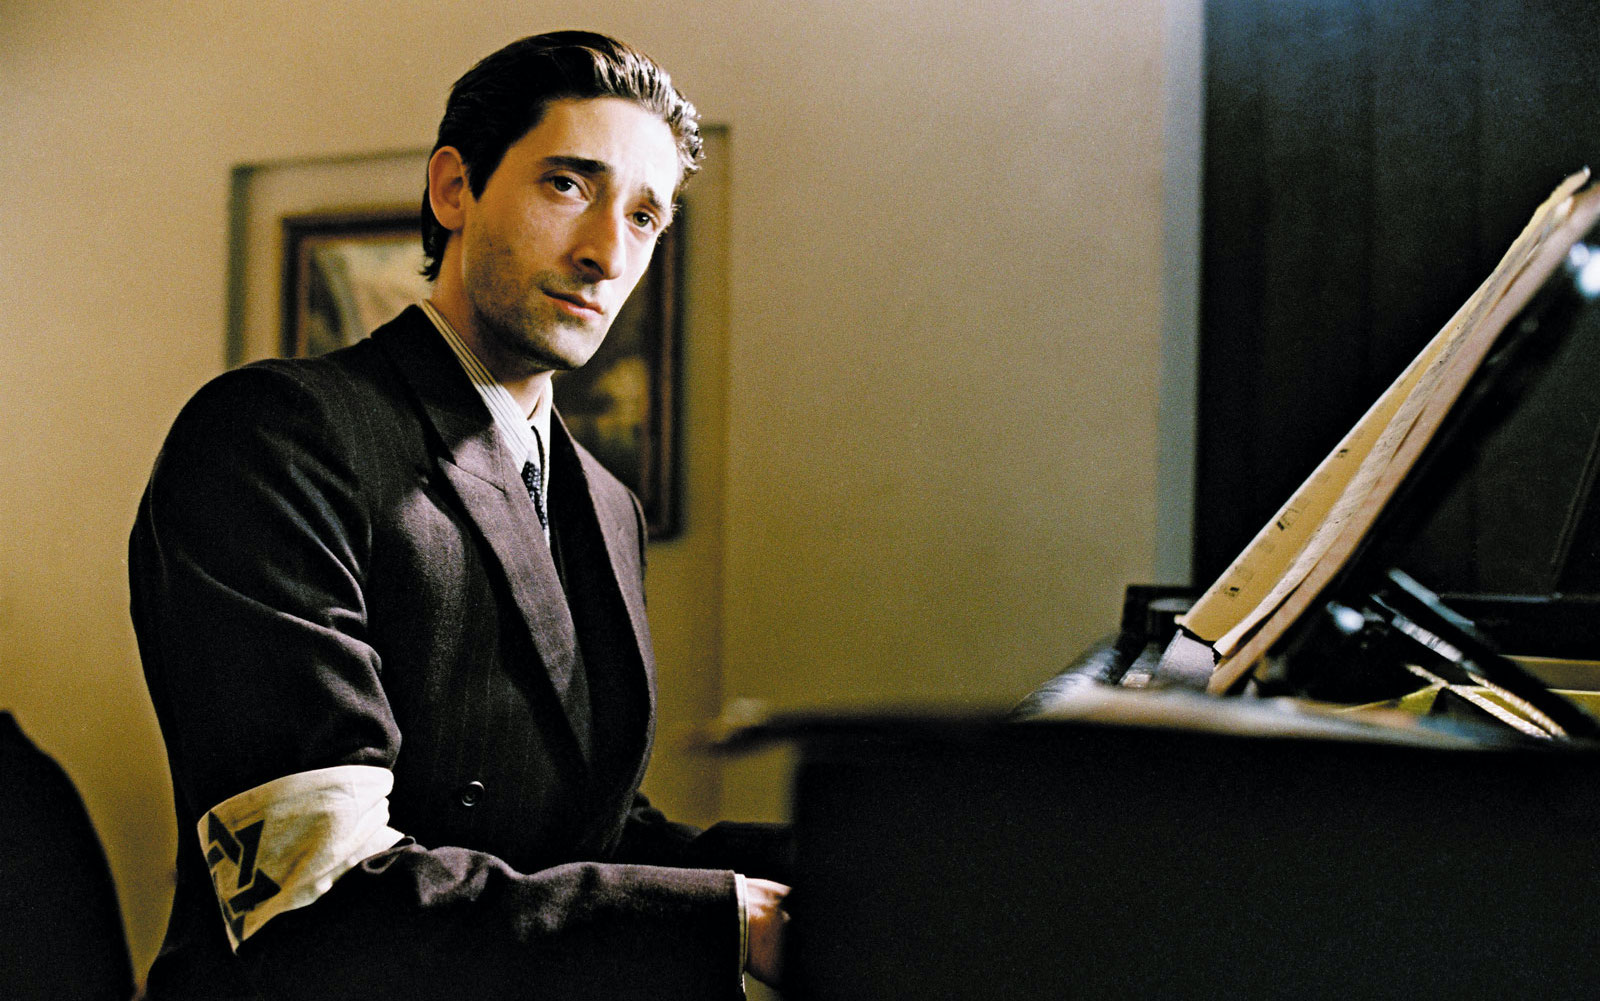 The Pianist (2002) Review